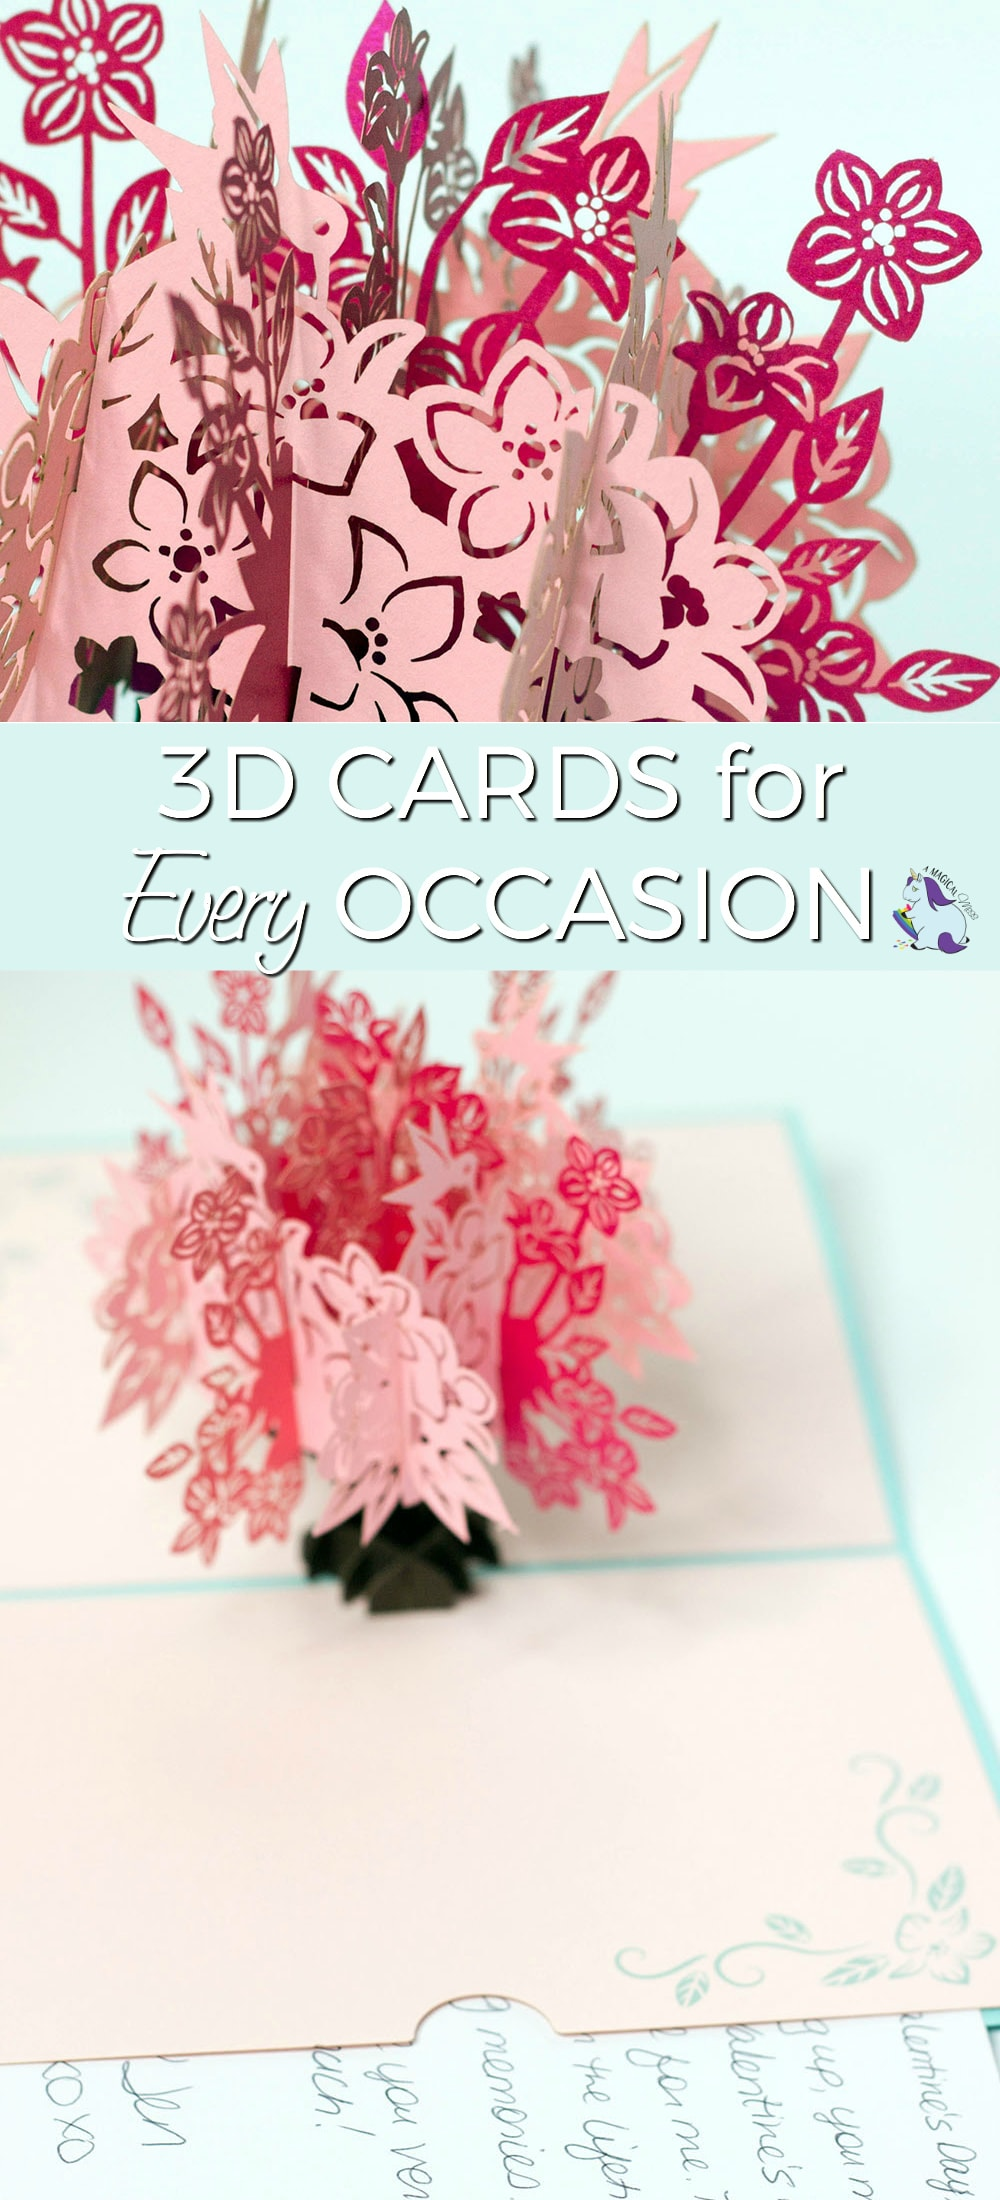 Smile-Inducing 3D Cards for Every Occasion #Love #GiftIdeas #cards #popupcards #uniquegift #mothersday